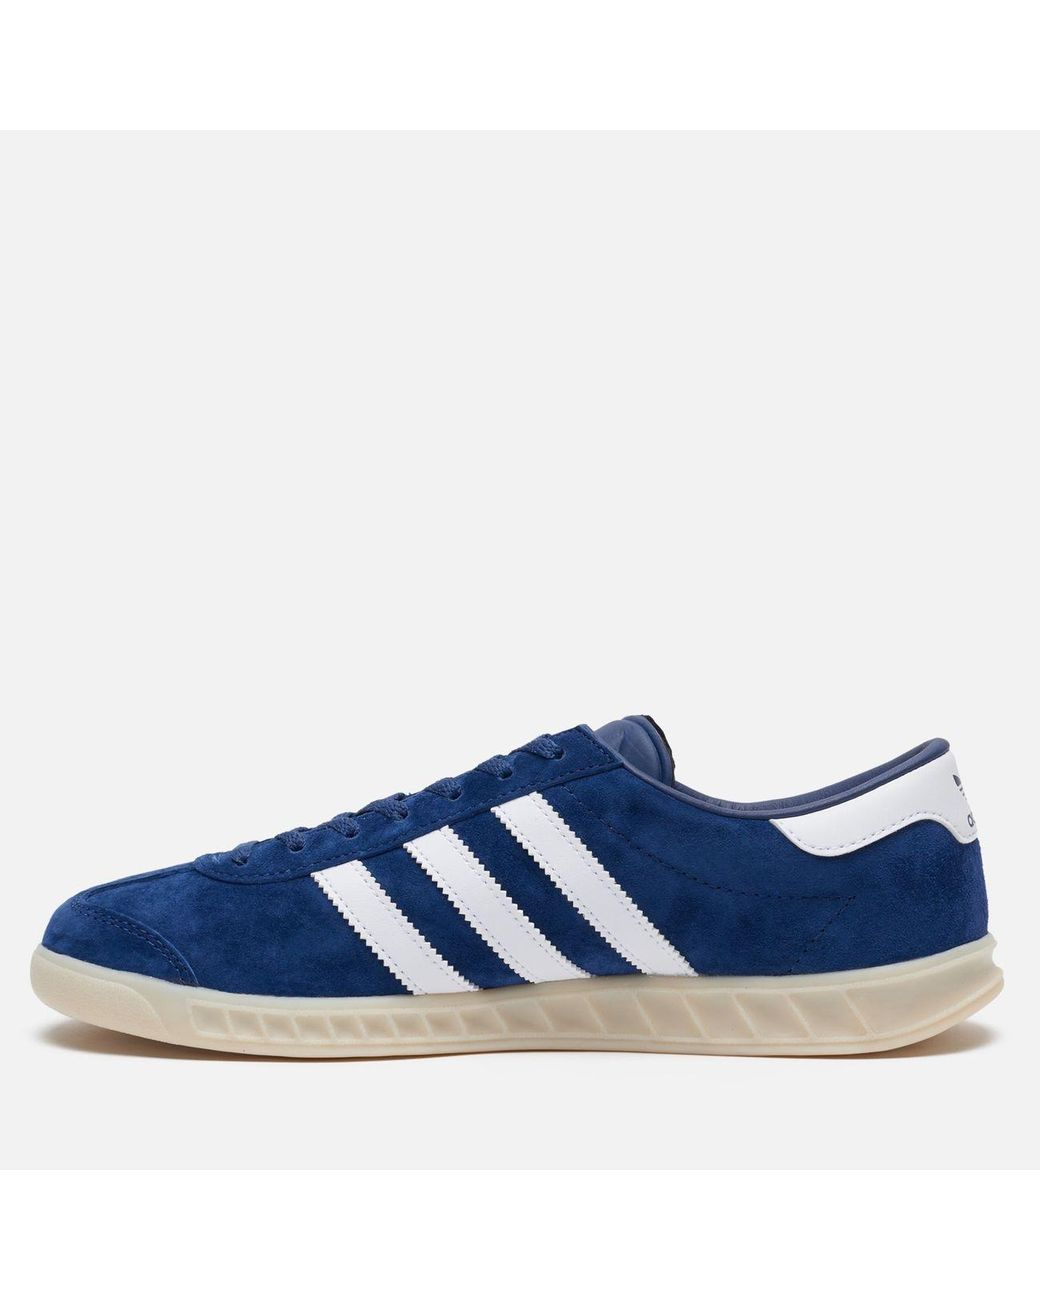 adidas Suede Hamburg Lace-up Sneakers in Blue for Men - Save 67 ...